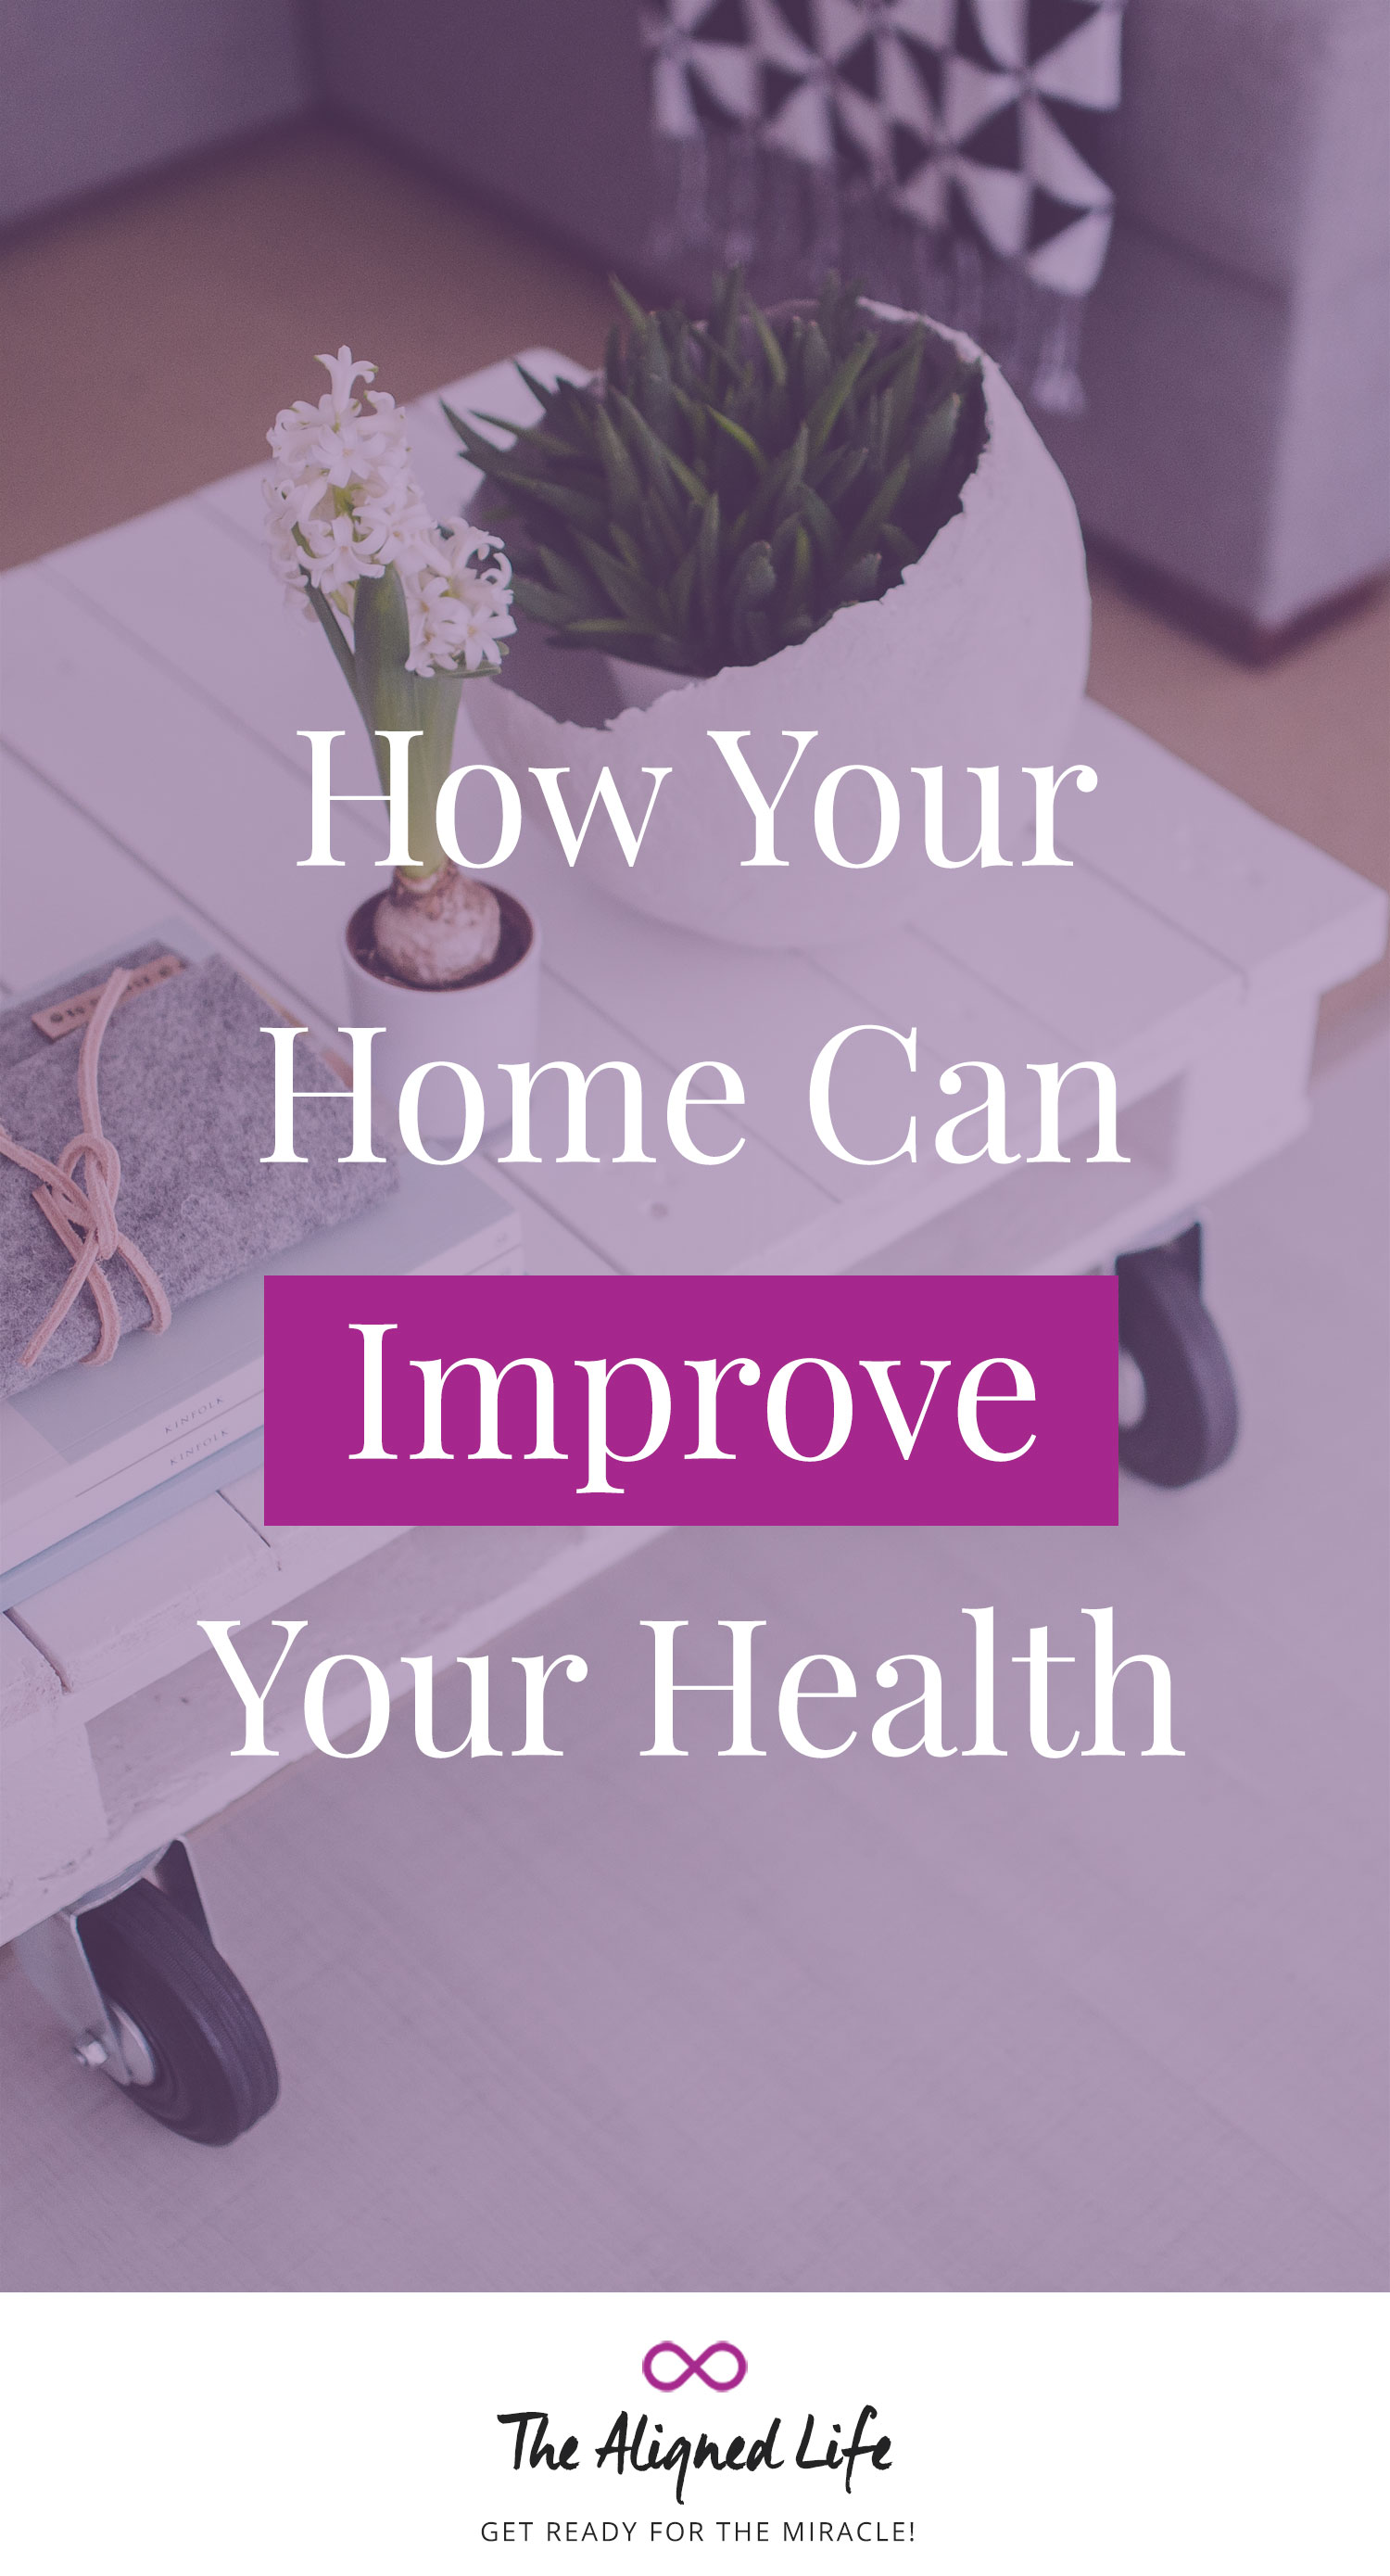 How Your Home Can Improve Your Health